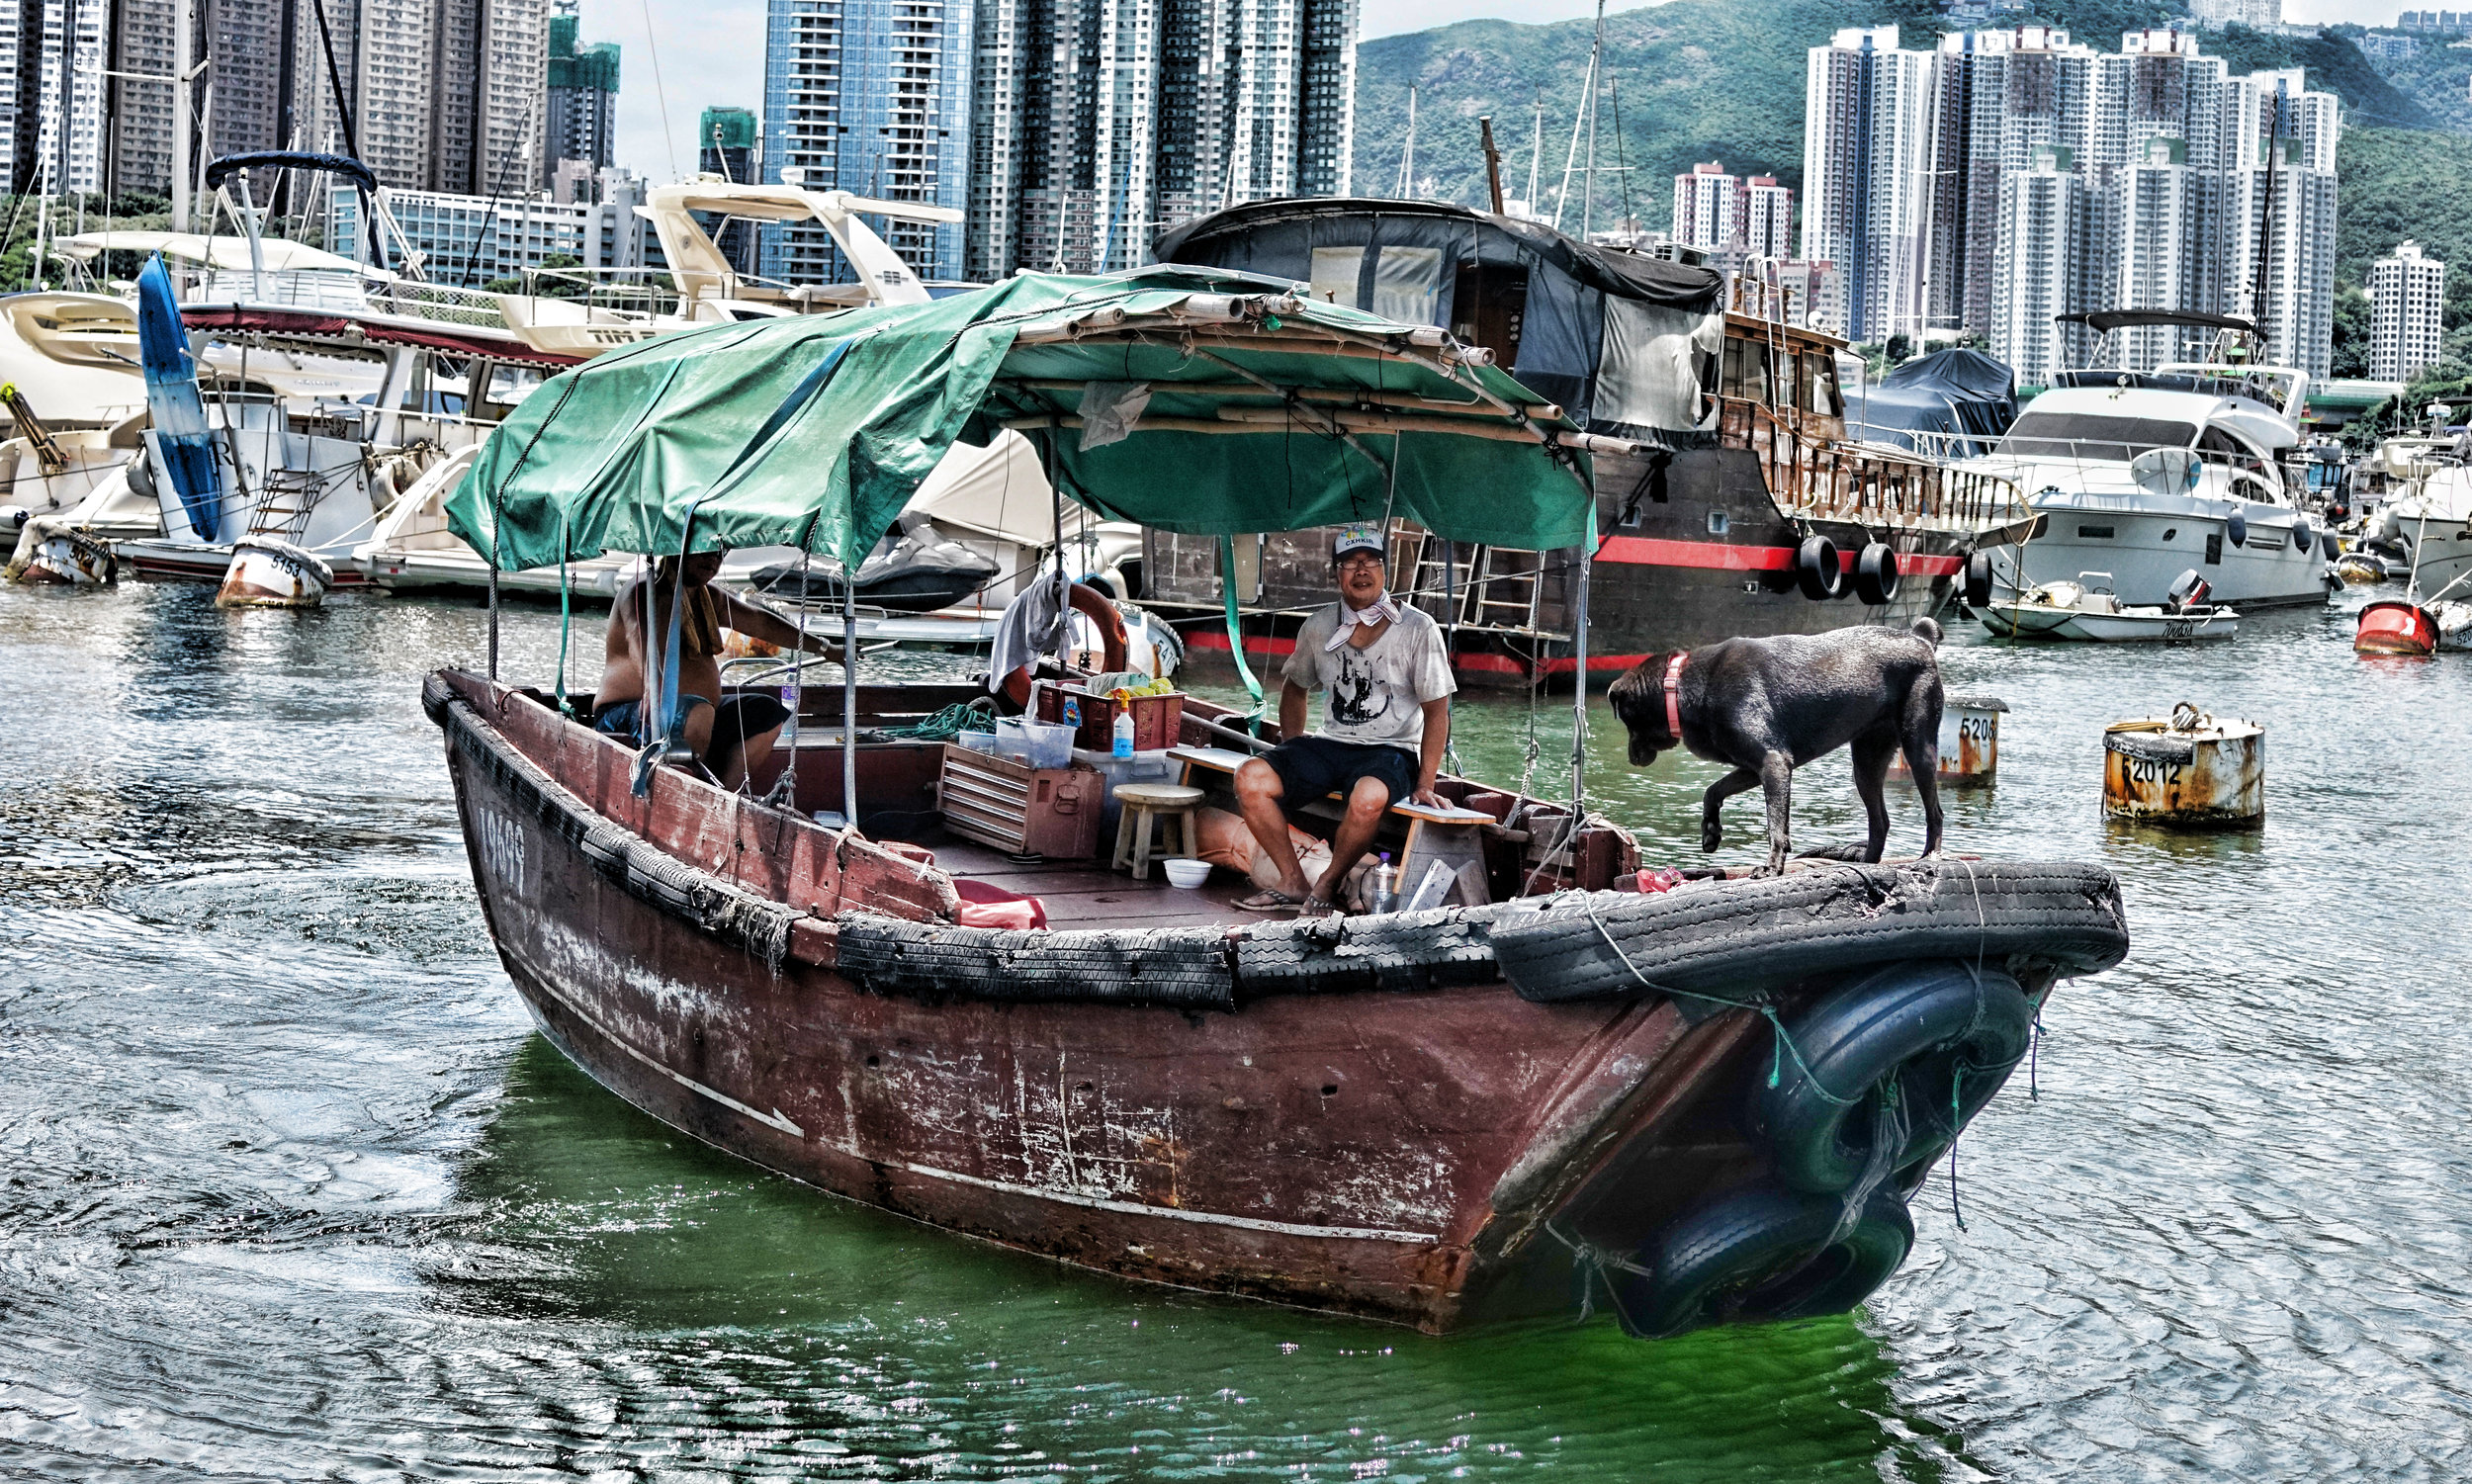 There's life in the old dog yet! a scenic view of Aberdeen Harbour on the southside of Hong Kong Island.